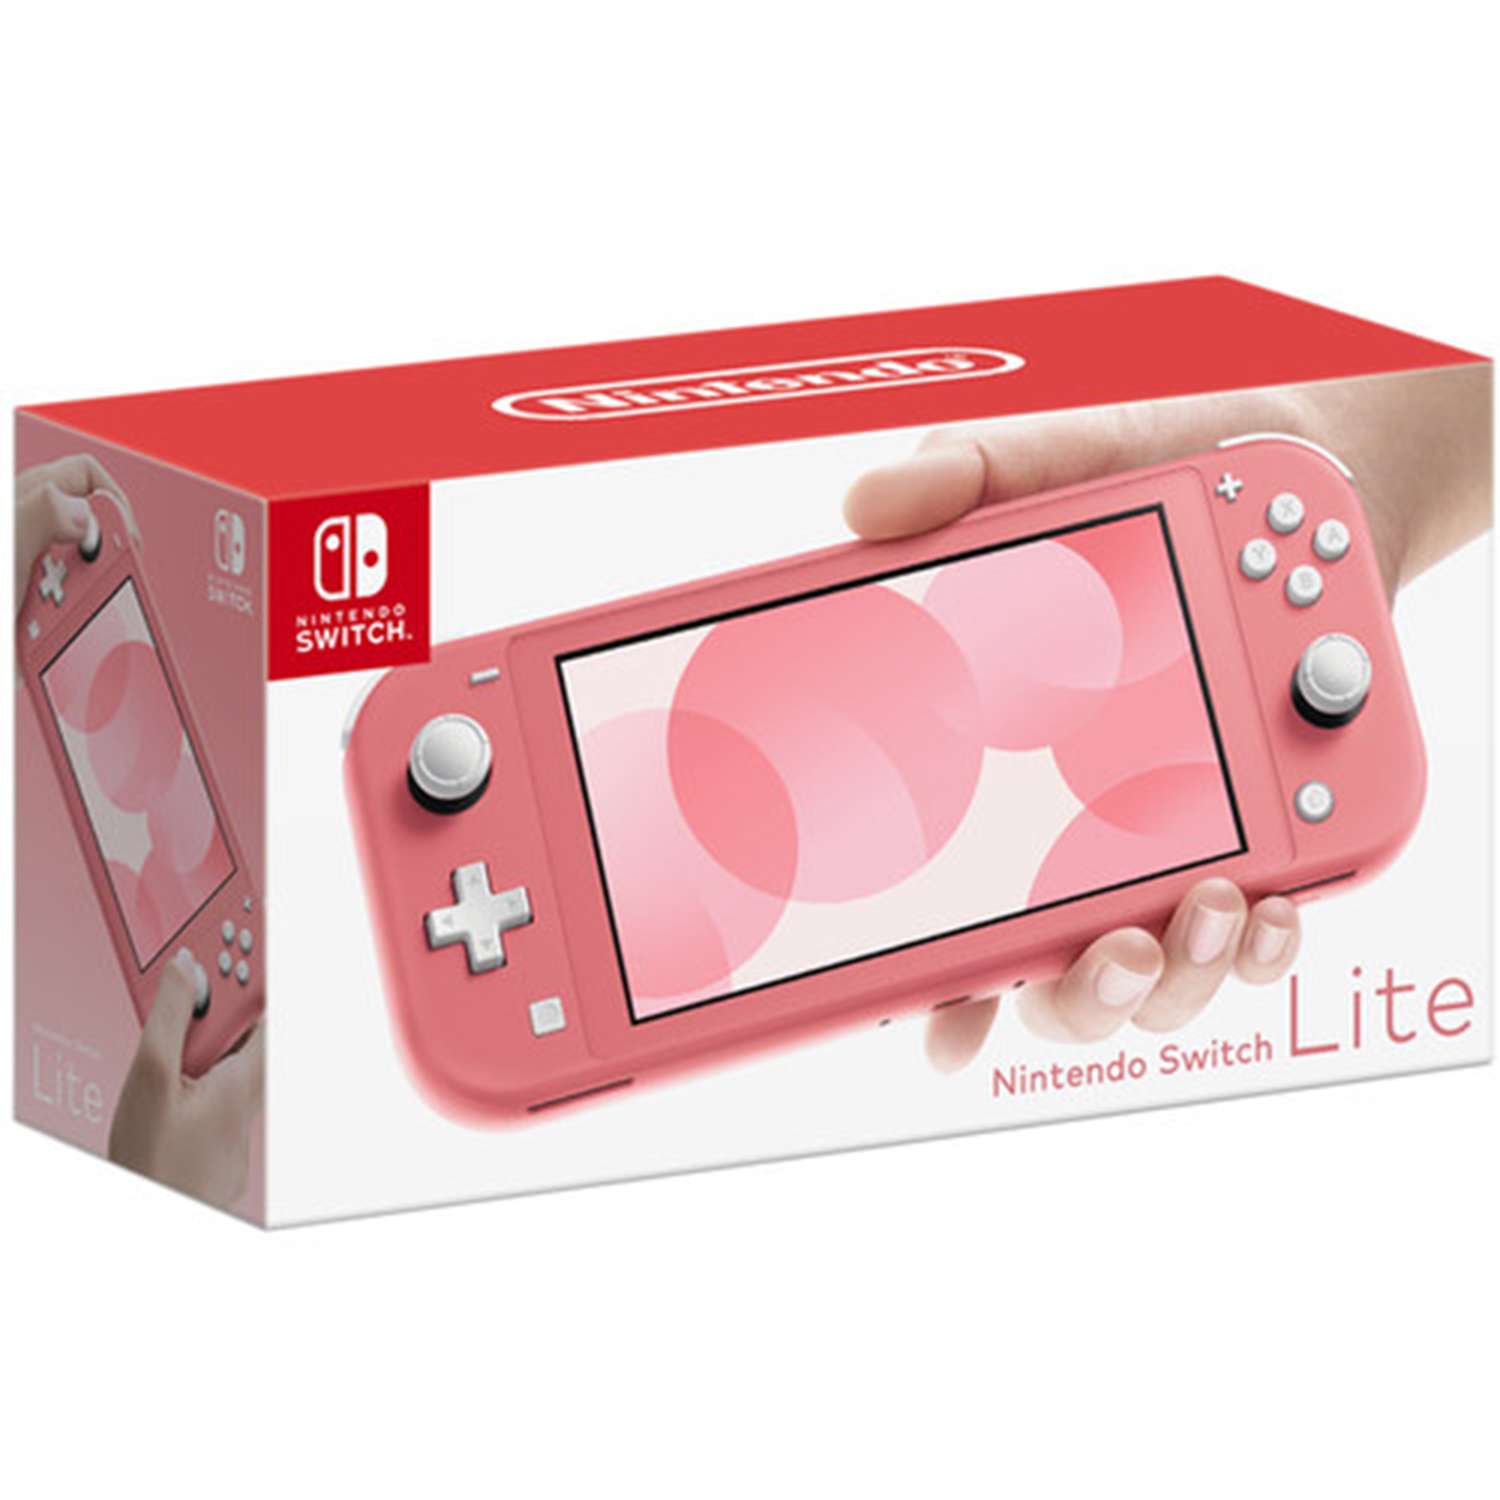 miniature 7 - Nintendo Switch Lite Console Bundle with Extra Warranty Protection